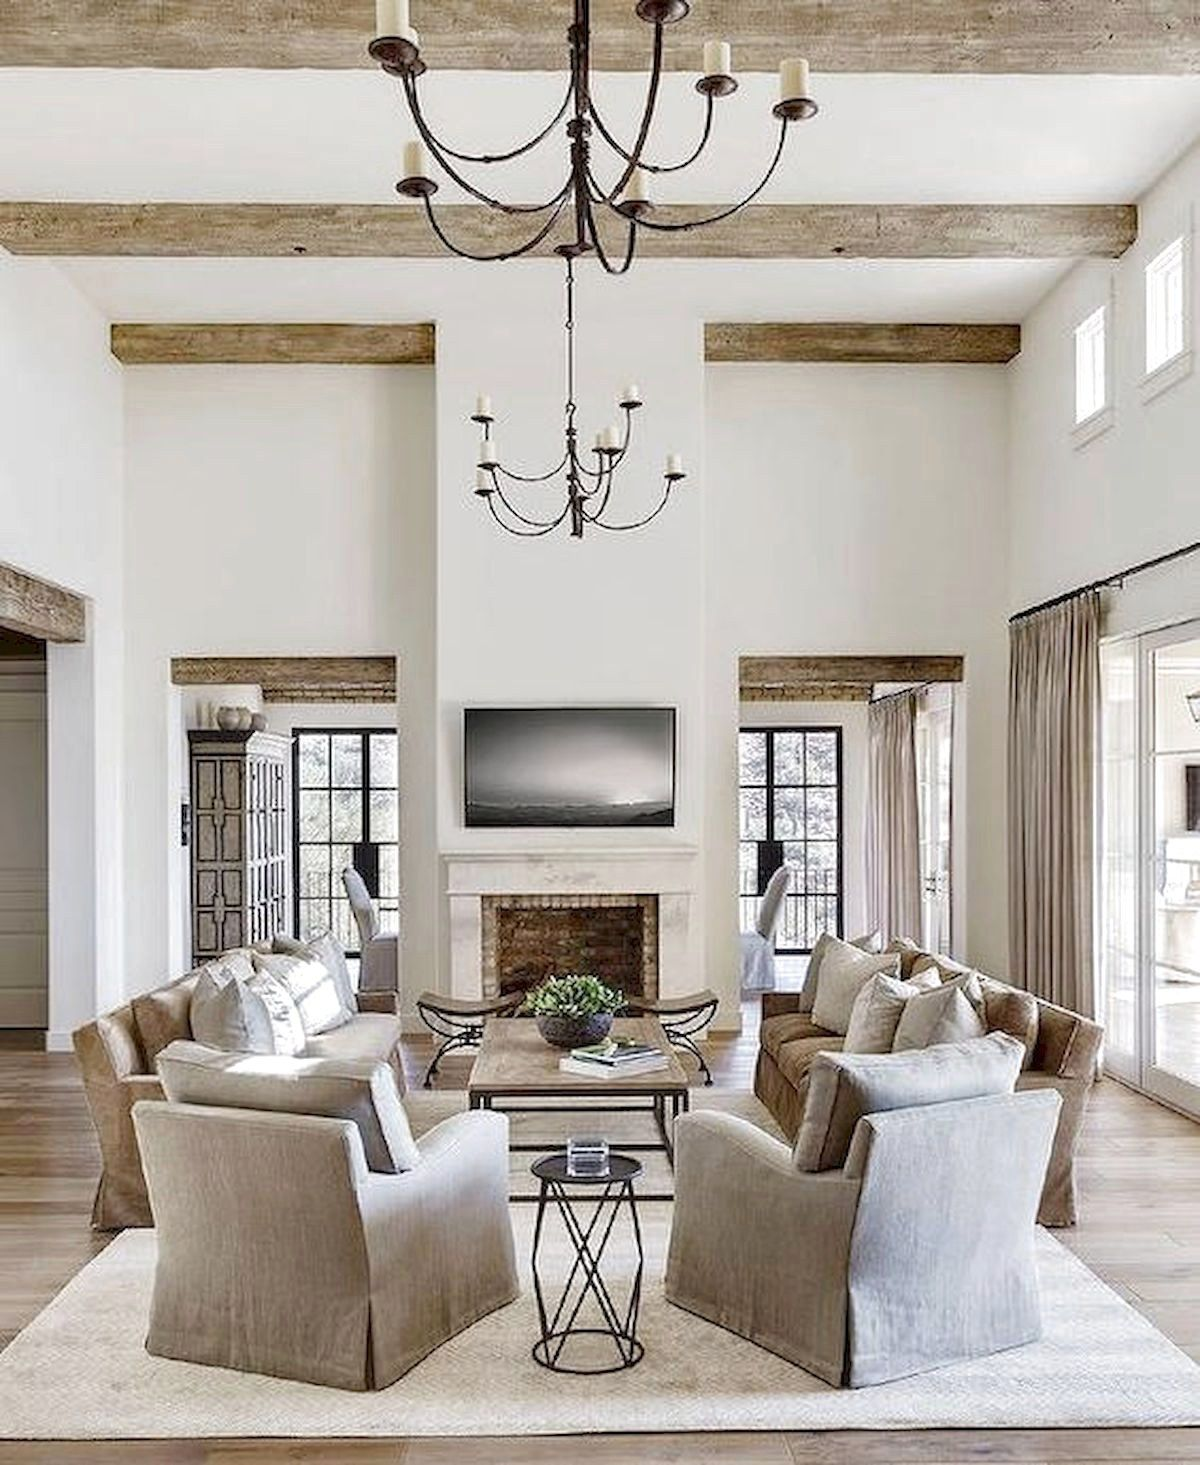 ✔70 Favourite Farmhouse Living Room Decor Ideas #FarmhouseLivingRoomDecorIdeas #LivingRoomDecor      #havenlylivingroom